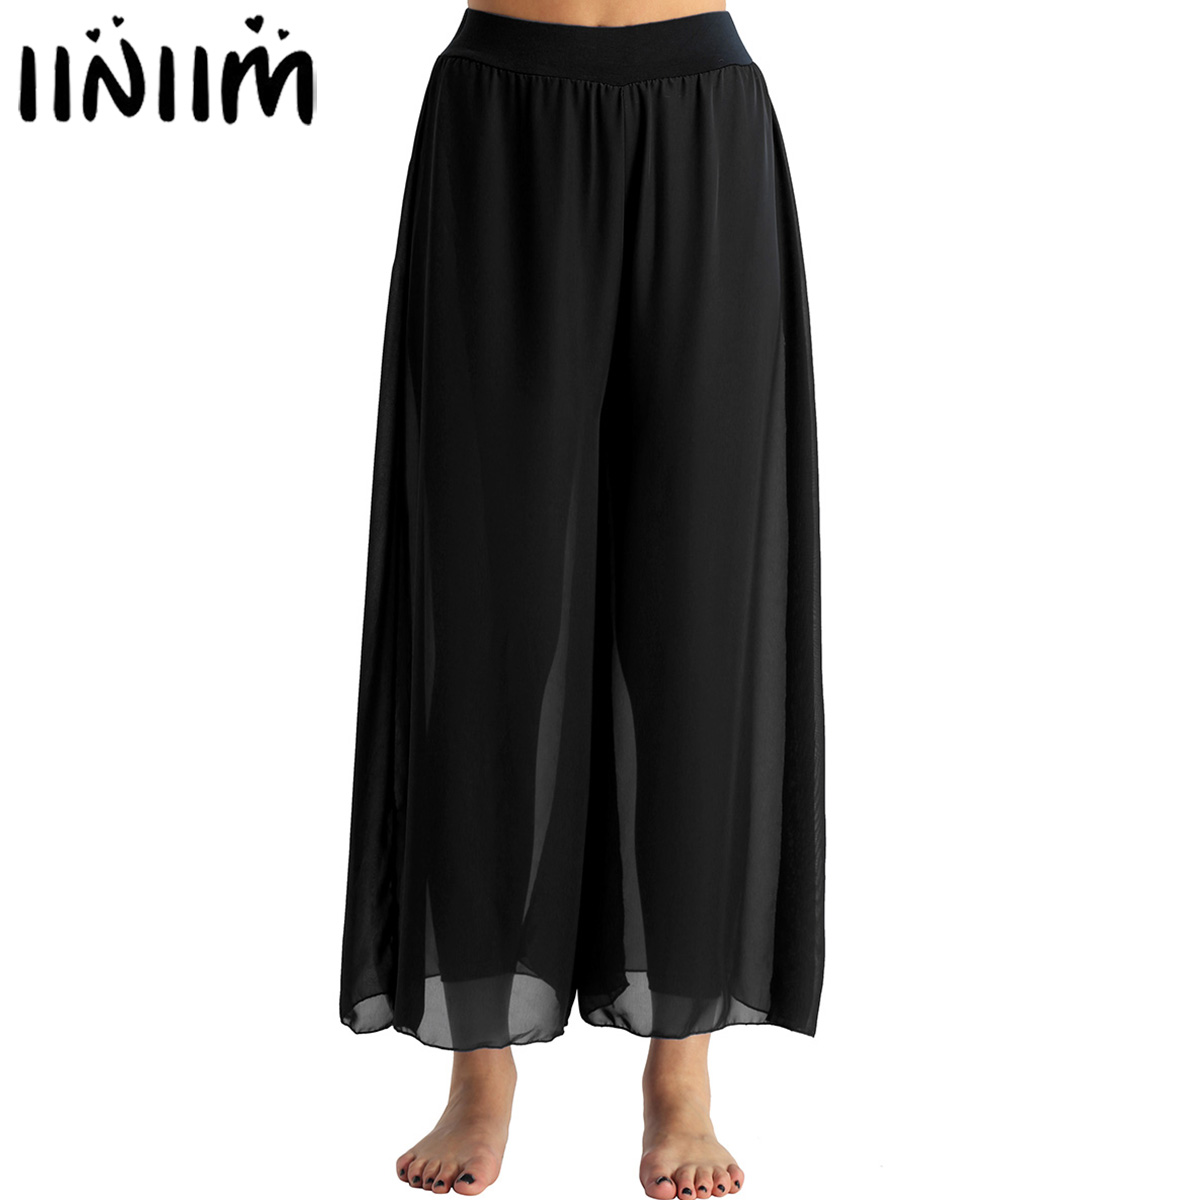 Womens Ballerina Dancewear Flowy Chiffon High-waisted Belly Dance Loose Wide-leg Pants Adult Performance Costume Dance Pants